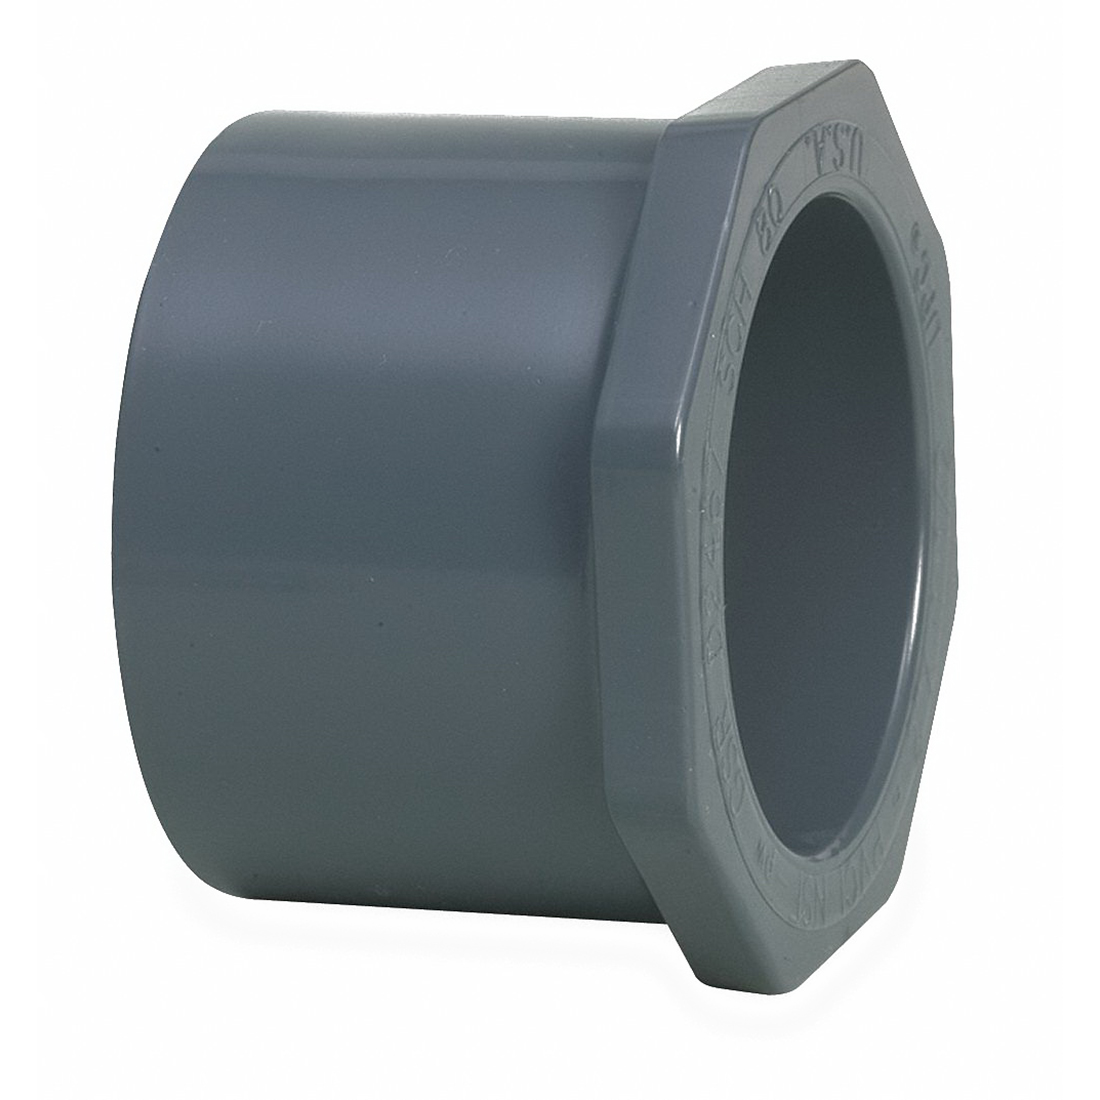 Gray PVC SCH 80 Flush Style Reducer Bushing, 1-1/4 in x 1 in, Spigot x Socket